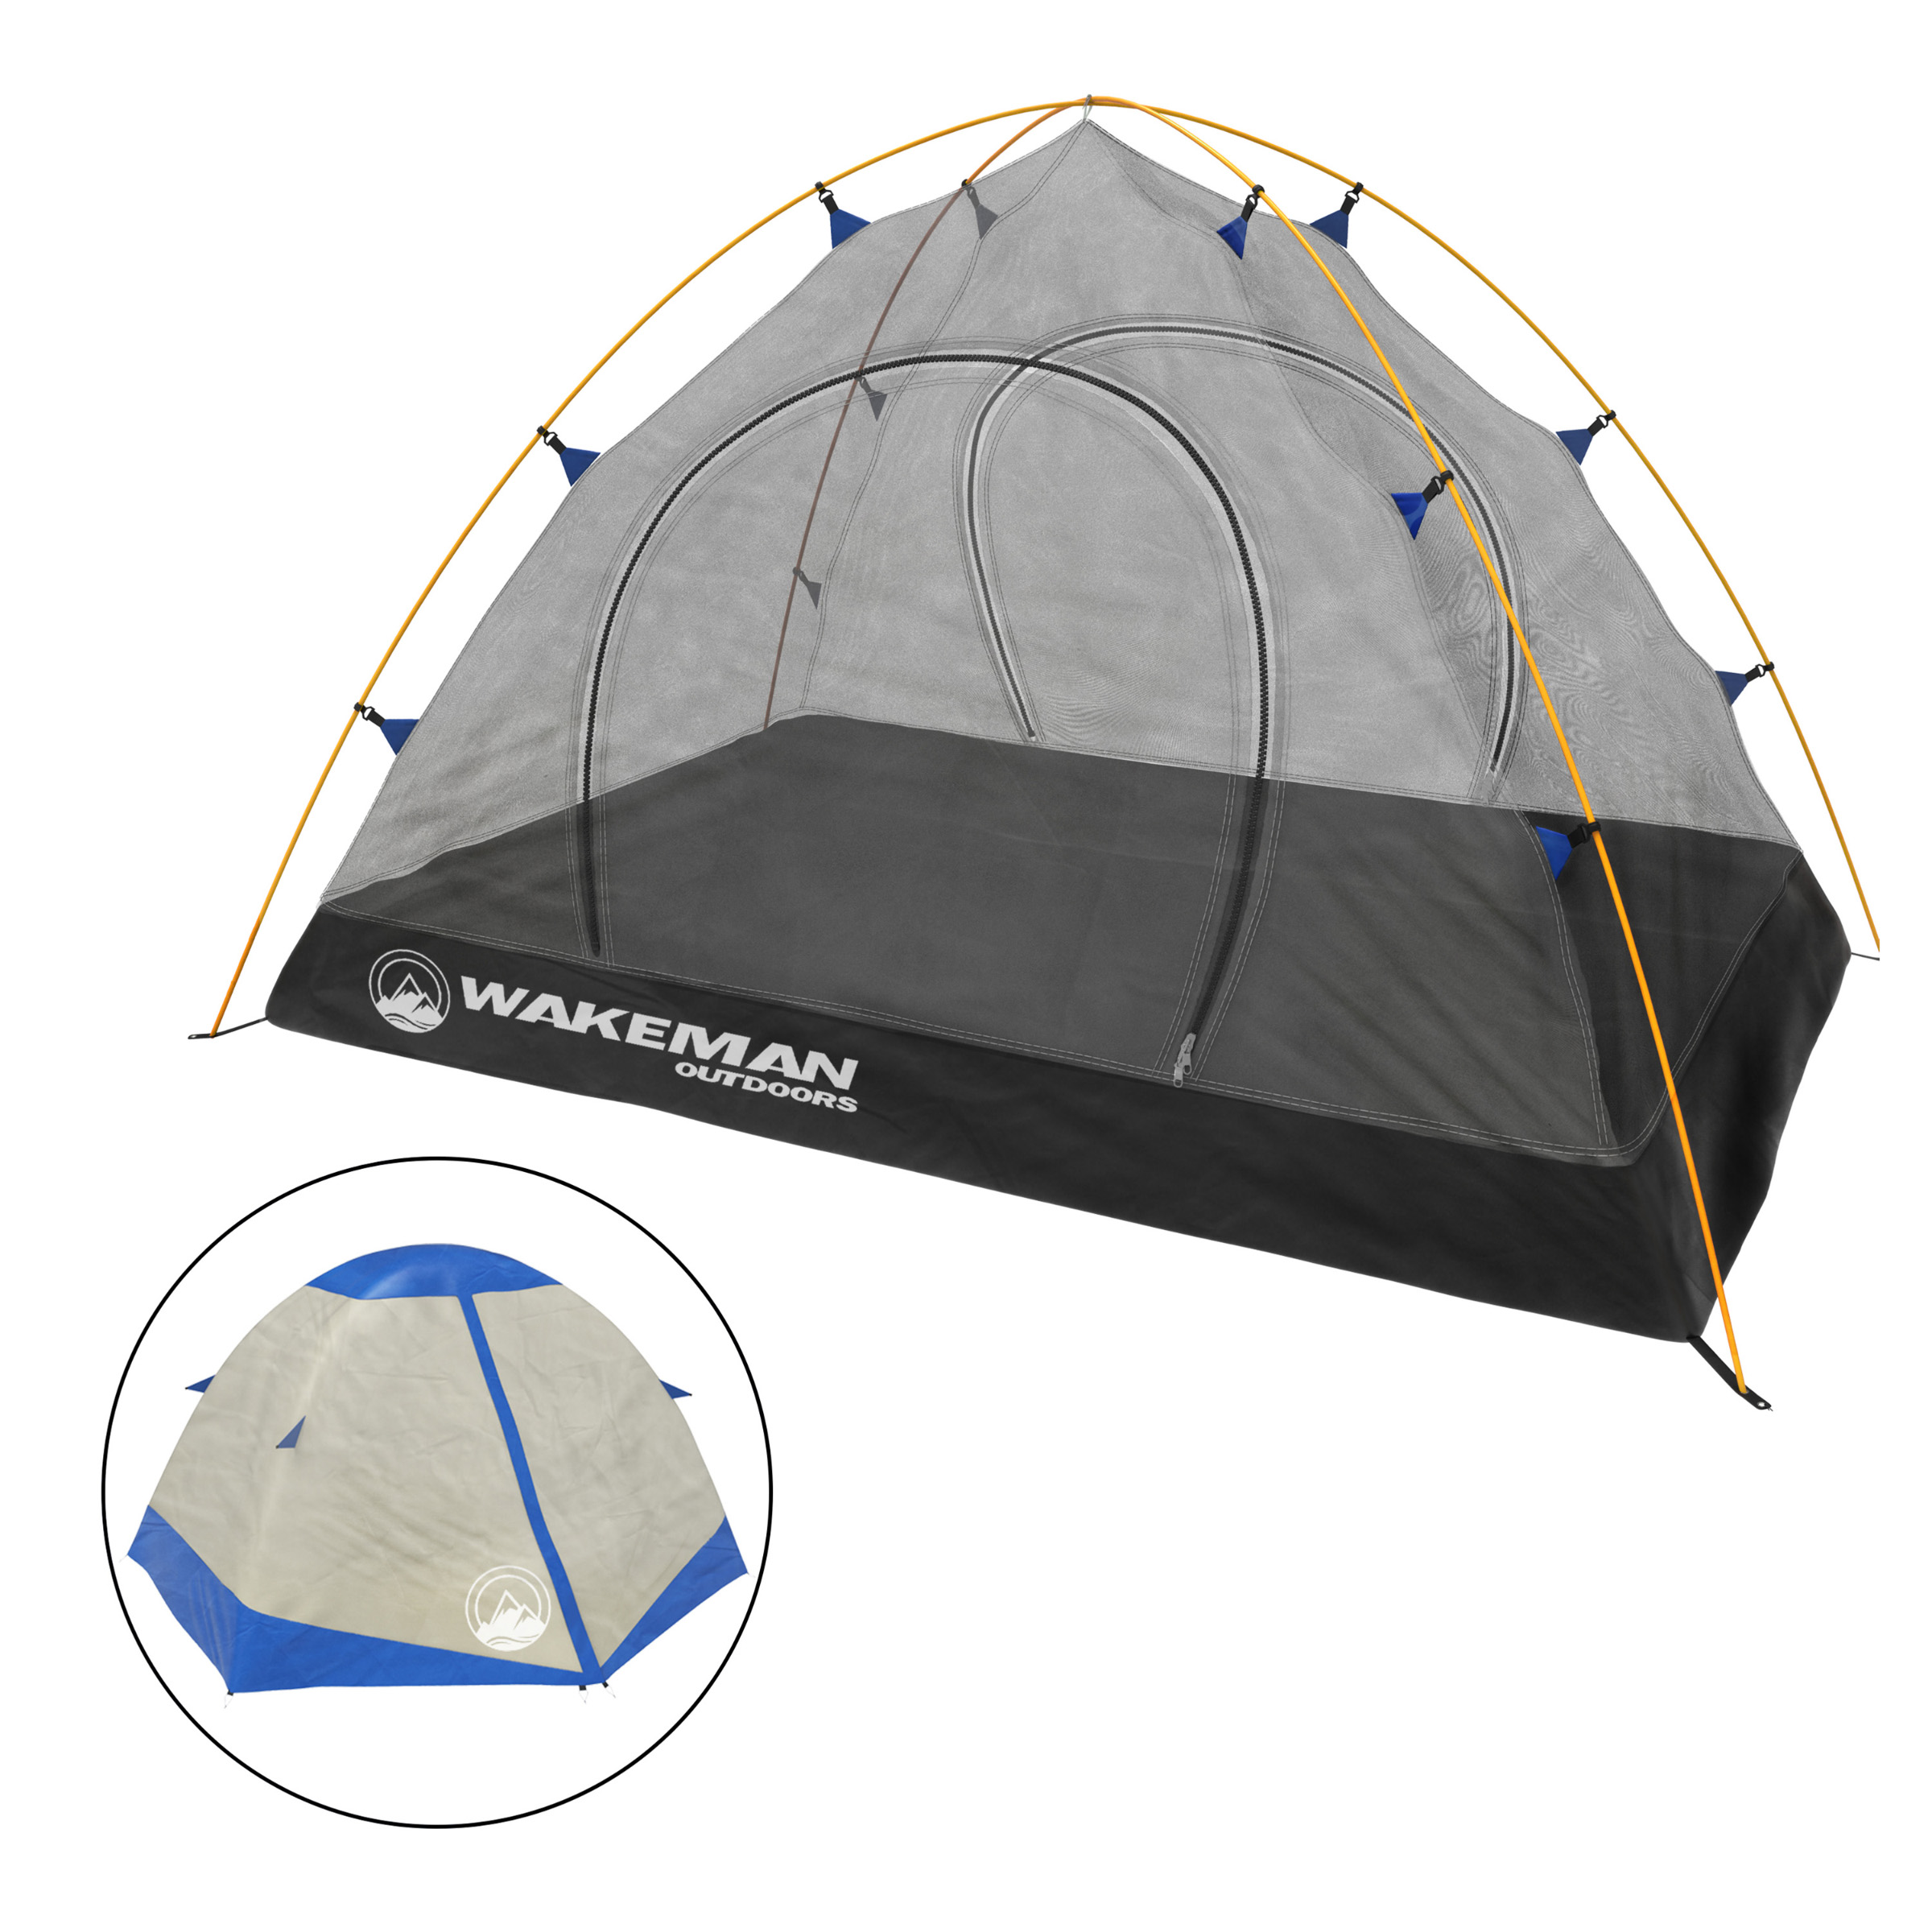 Details about  /2 Person Ultralight Tent Backpacking Camping Dome Waterproof Double Layer Hiking